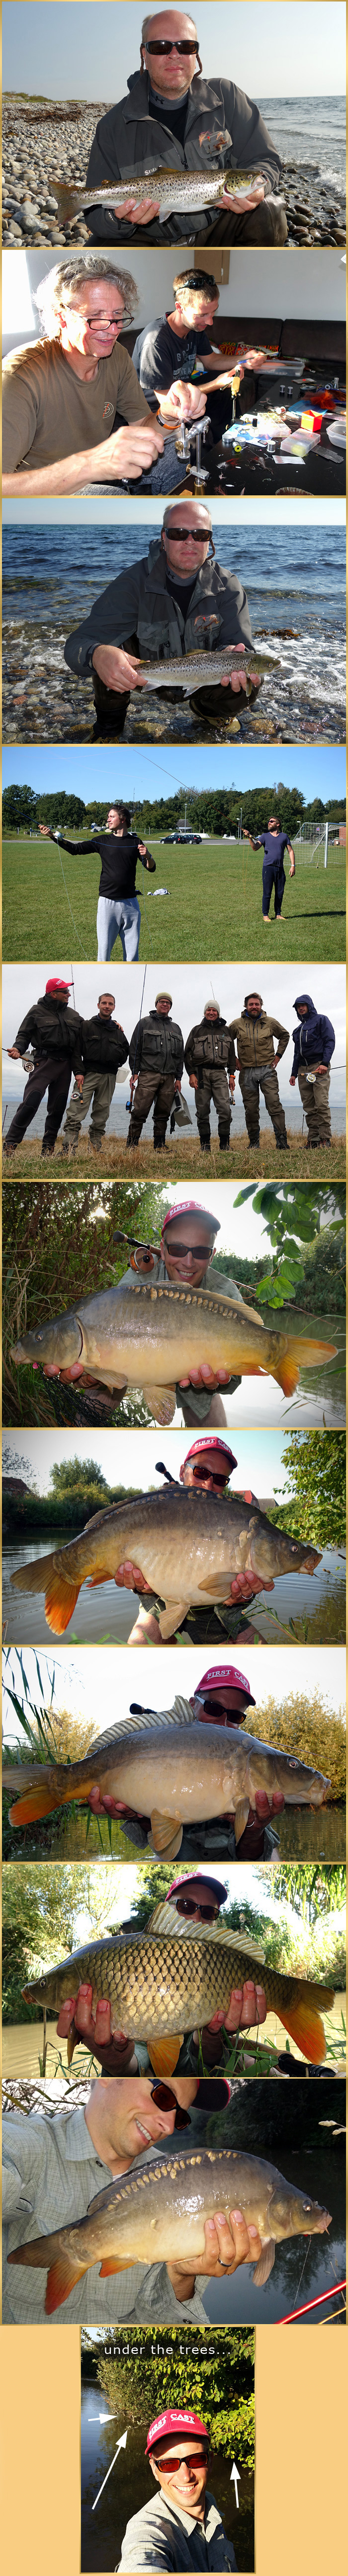 flyfishing for carp